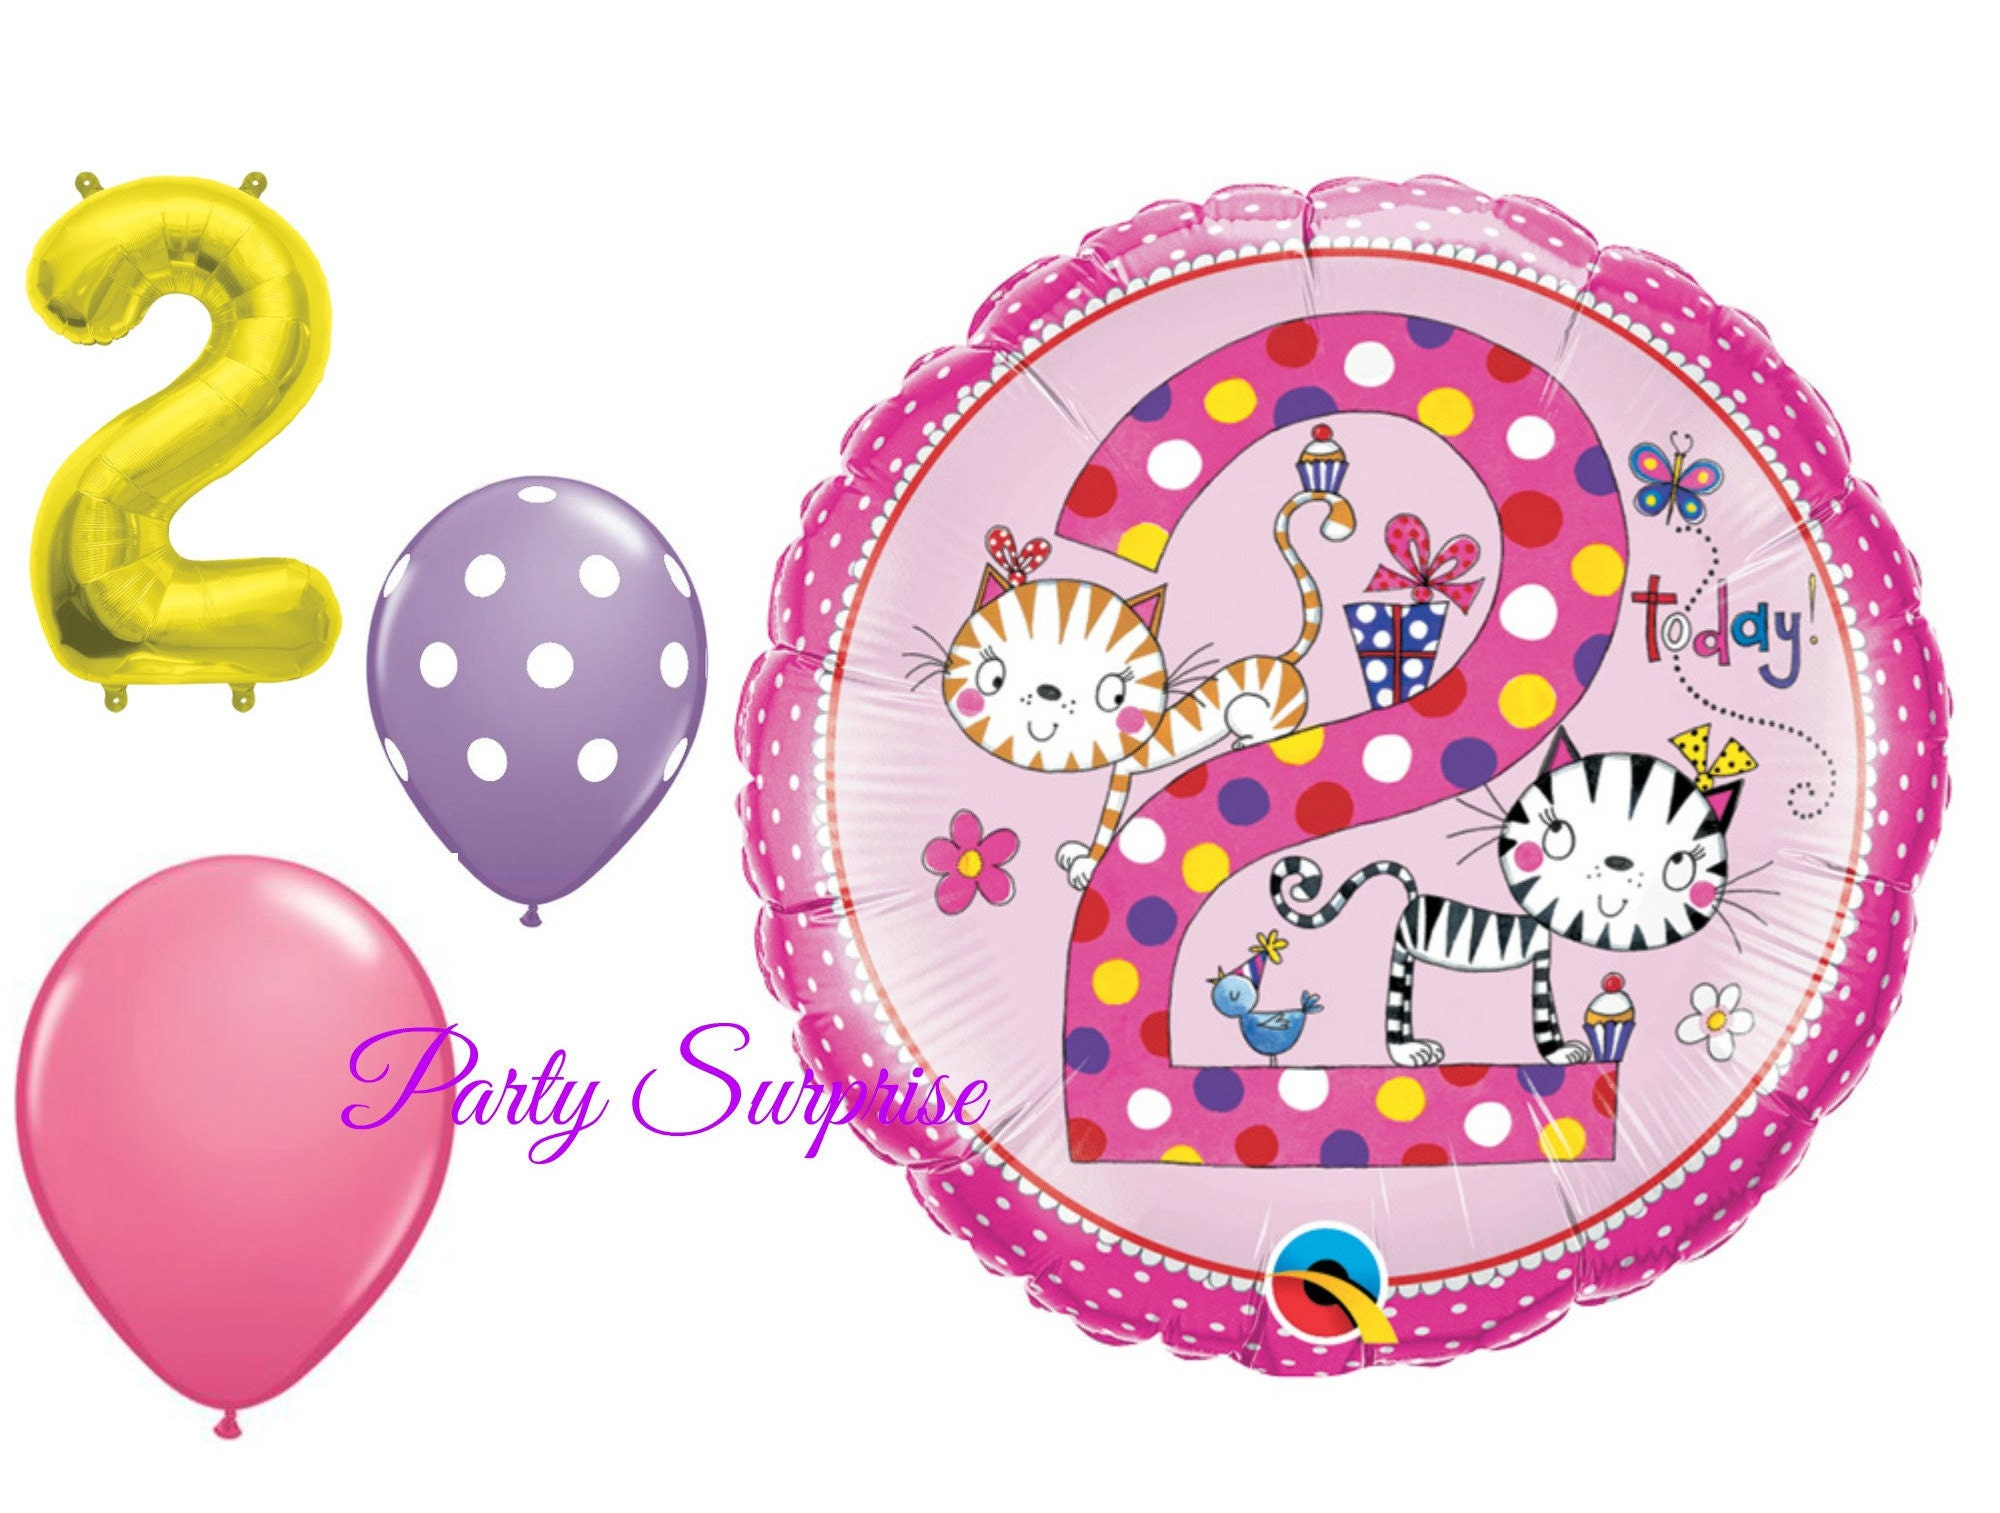 2nd Birthday Balloon Package Girl 2 Years Old Balloons Party Cats Pink Purple From PartySurprise On Etsy